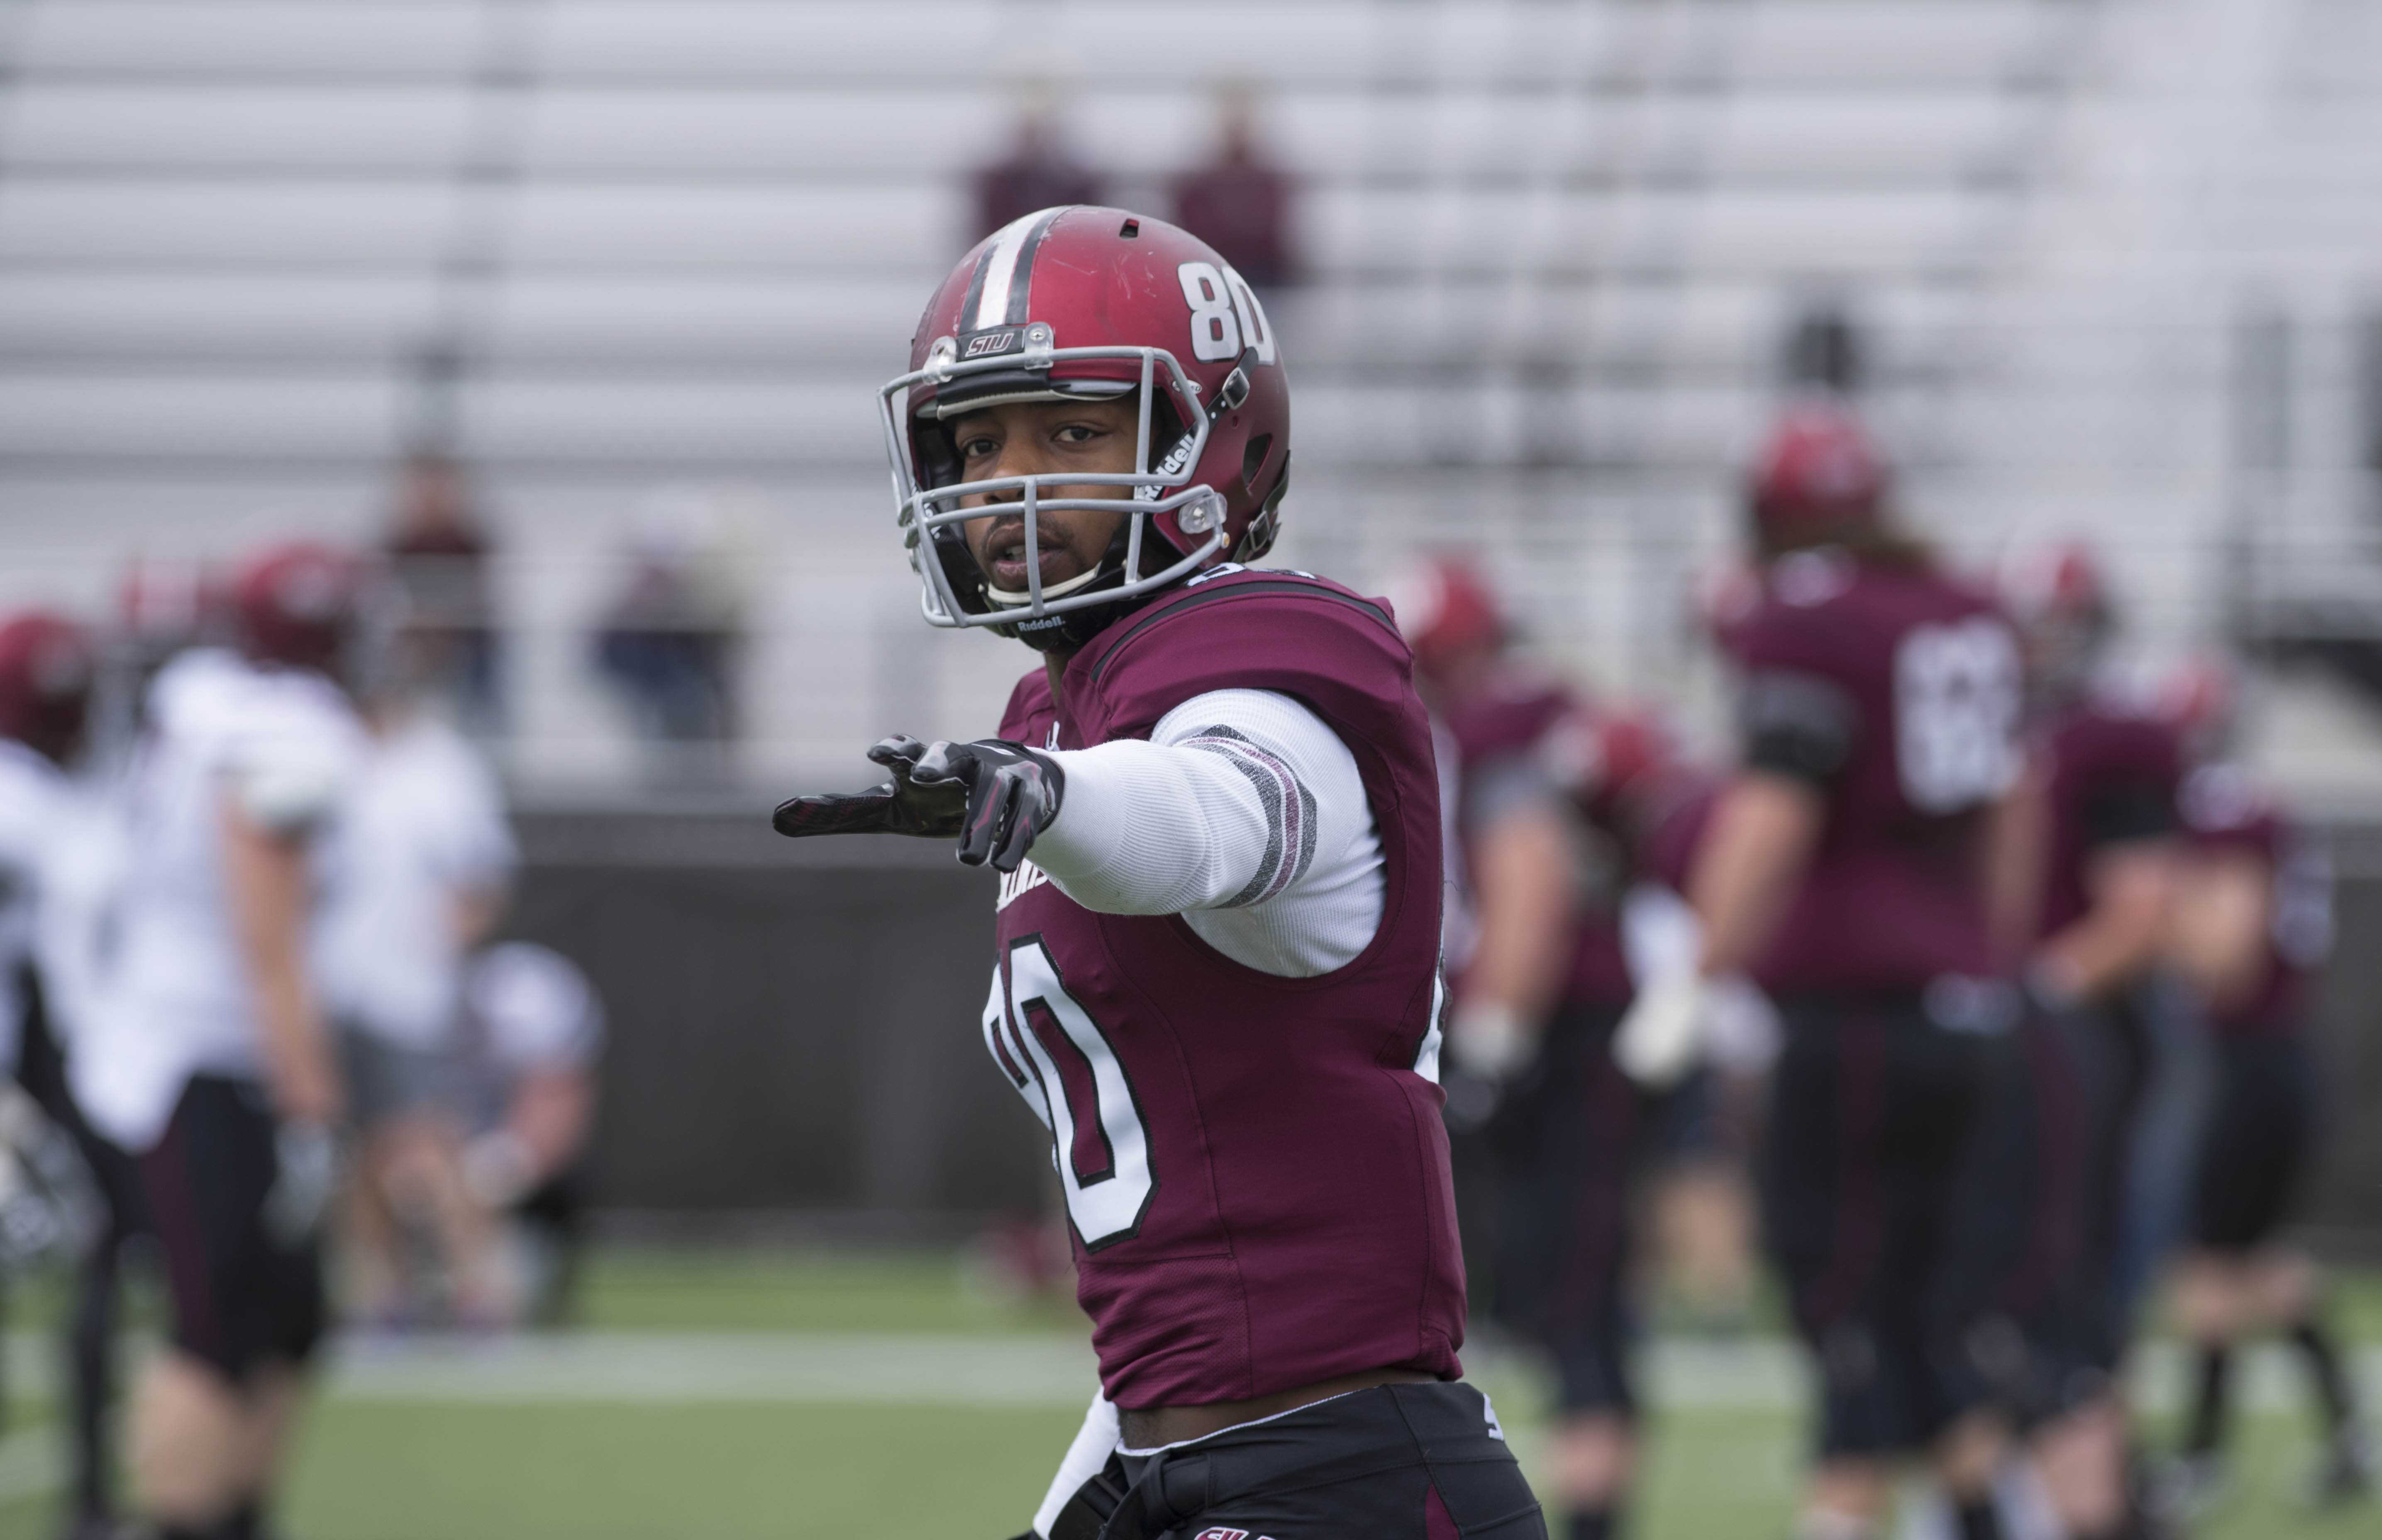 Senior+tight+end+John+Gardner+motions+to+a+teammate+on+the+sideline+during+SIU+football%E2%80%99s+first+spring+scrimmage+of+the+season+on+Sunday%2C+March+26%2C+2017%2C+at+Saluki+Stadium.+%28Bill+Lukitsch+%7C+%40lukitsbill%29